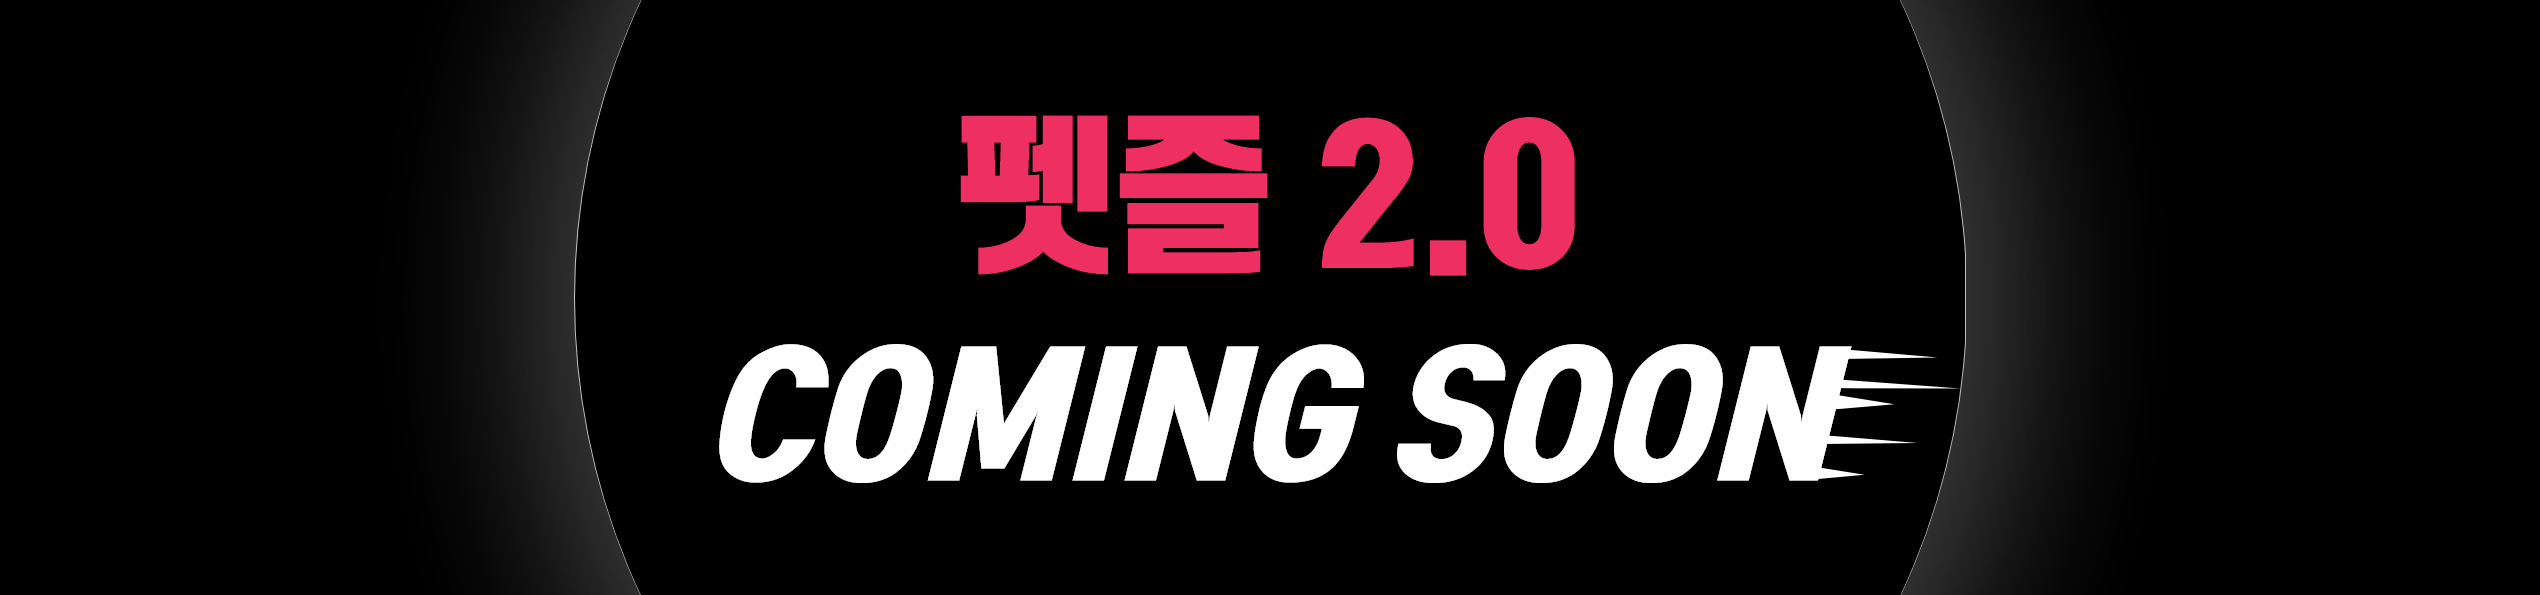 펫즐2.0 comming soon